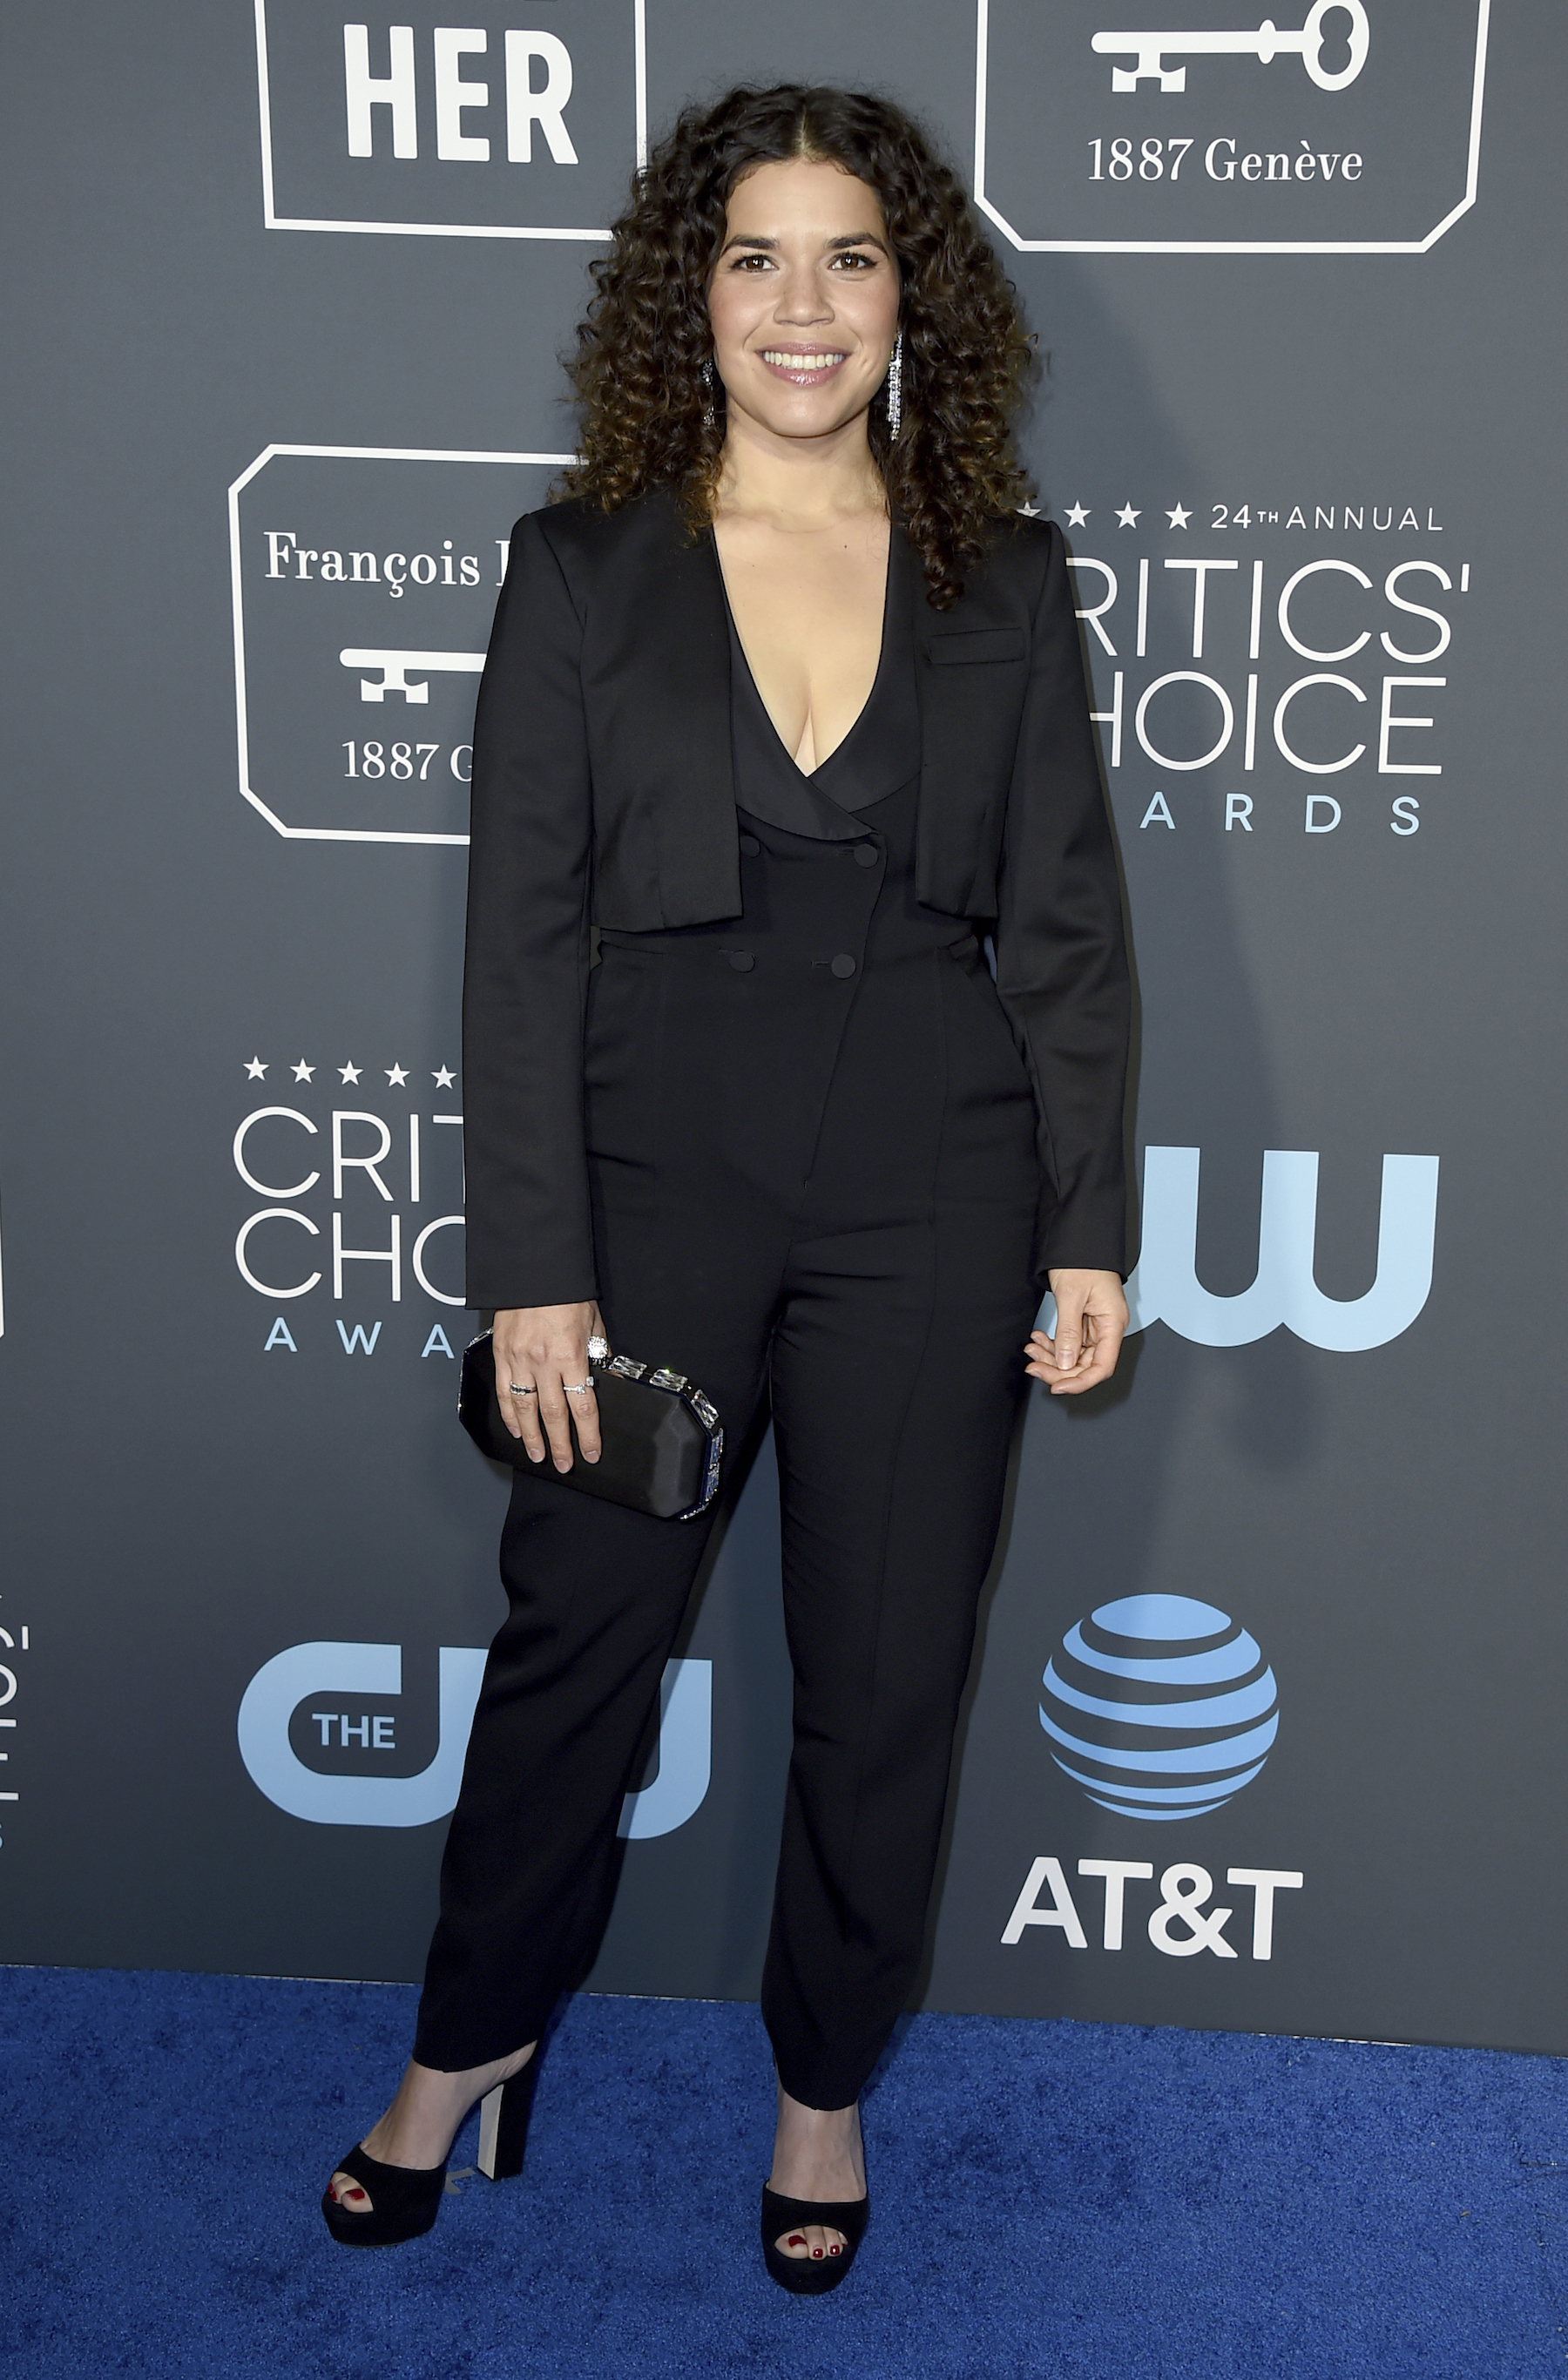 "<div class=""meta image-caption""><div class=""origin-logo origin-image ap""><span>AP</span></div><span class=""caption-text"">America Ferrera arrives at the 24th annual Critics' Choice Awards on Sunday, Jan. 13, 2019, at the Barker Hangar in Santa Monica, Calif. (Jordan Strauss/Invision/AP)</span></div>"